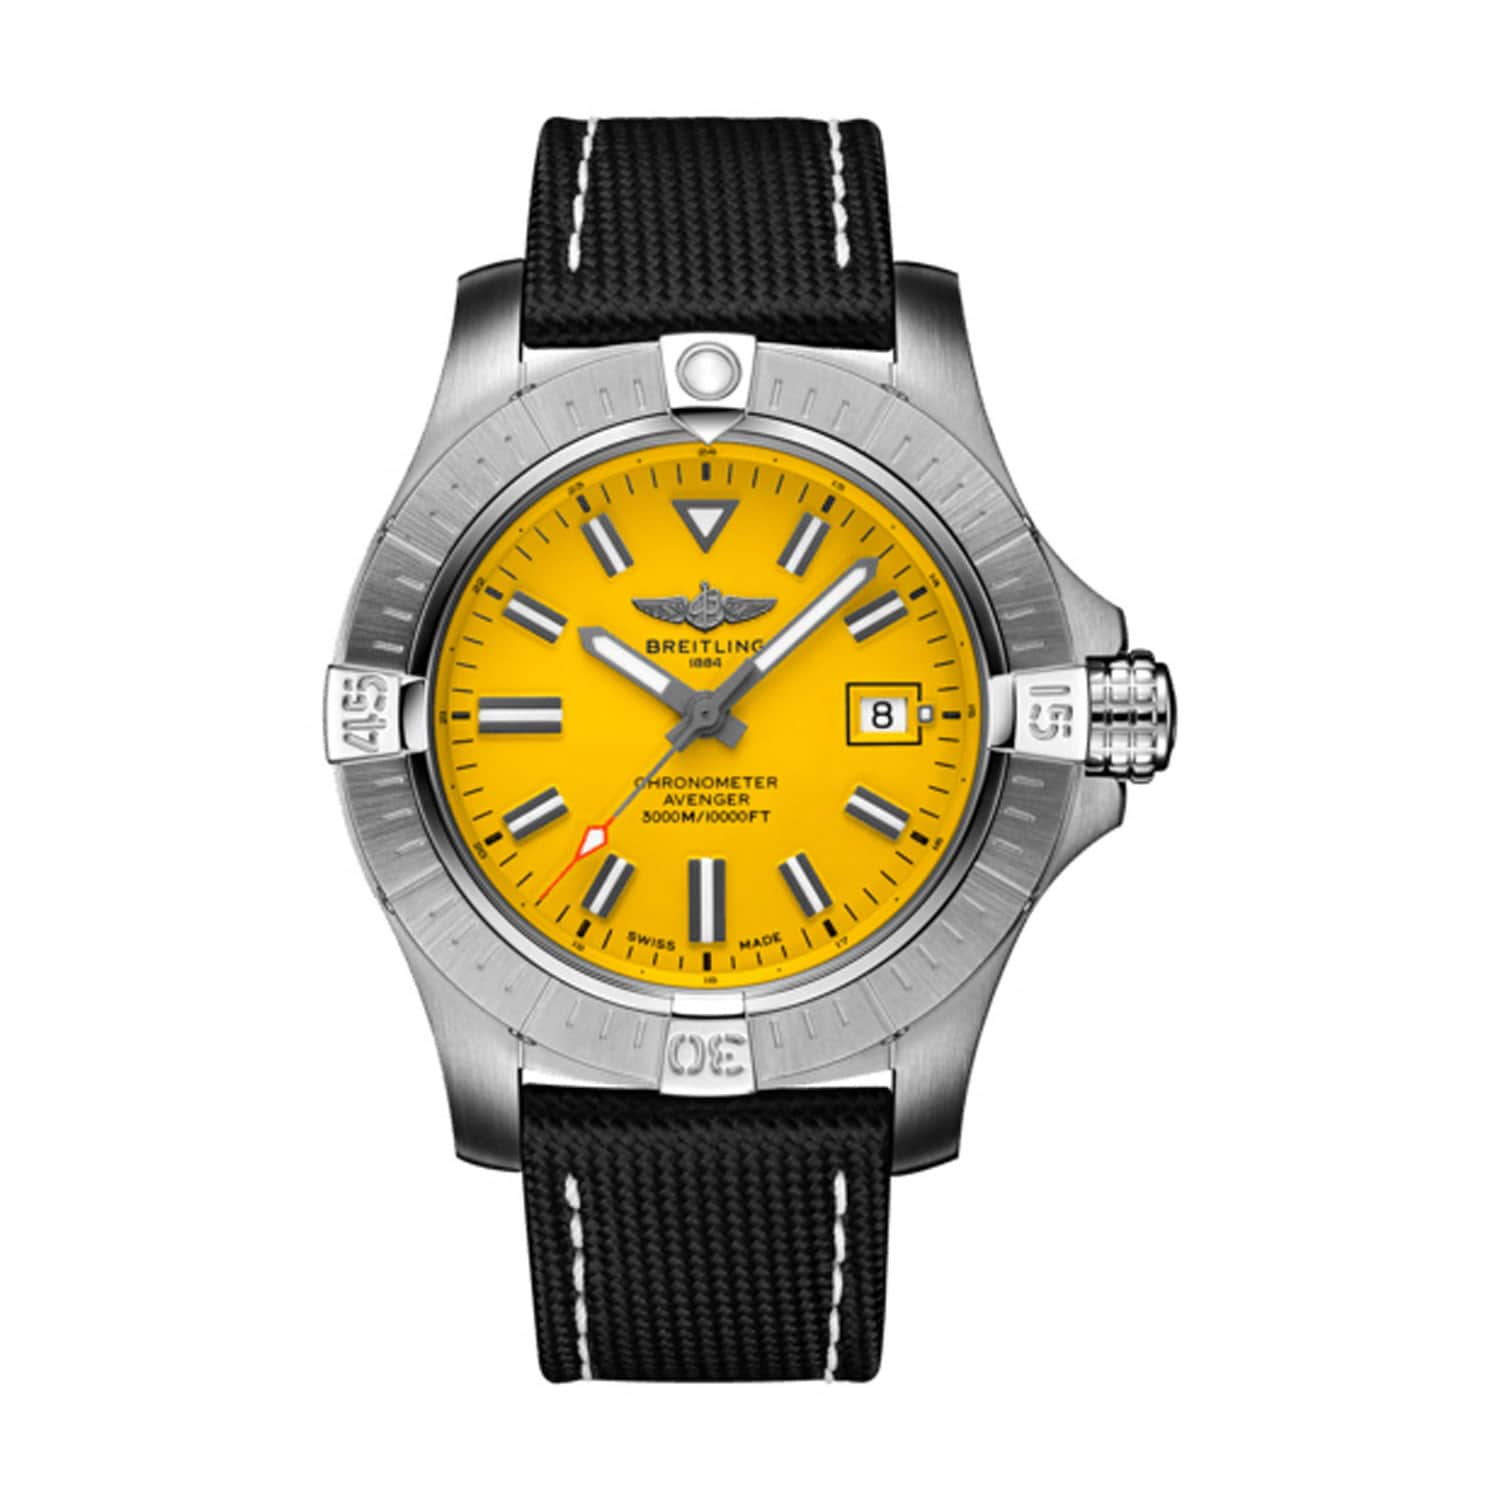 Breitling Avenger 45mm Seawolf Yellow Dial Steel Case Black Strap Watch